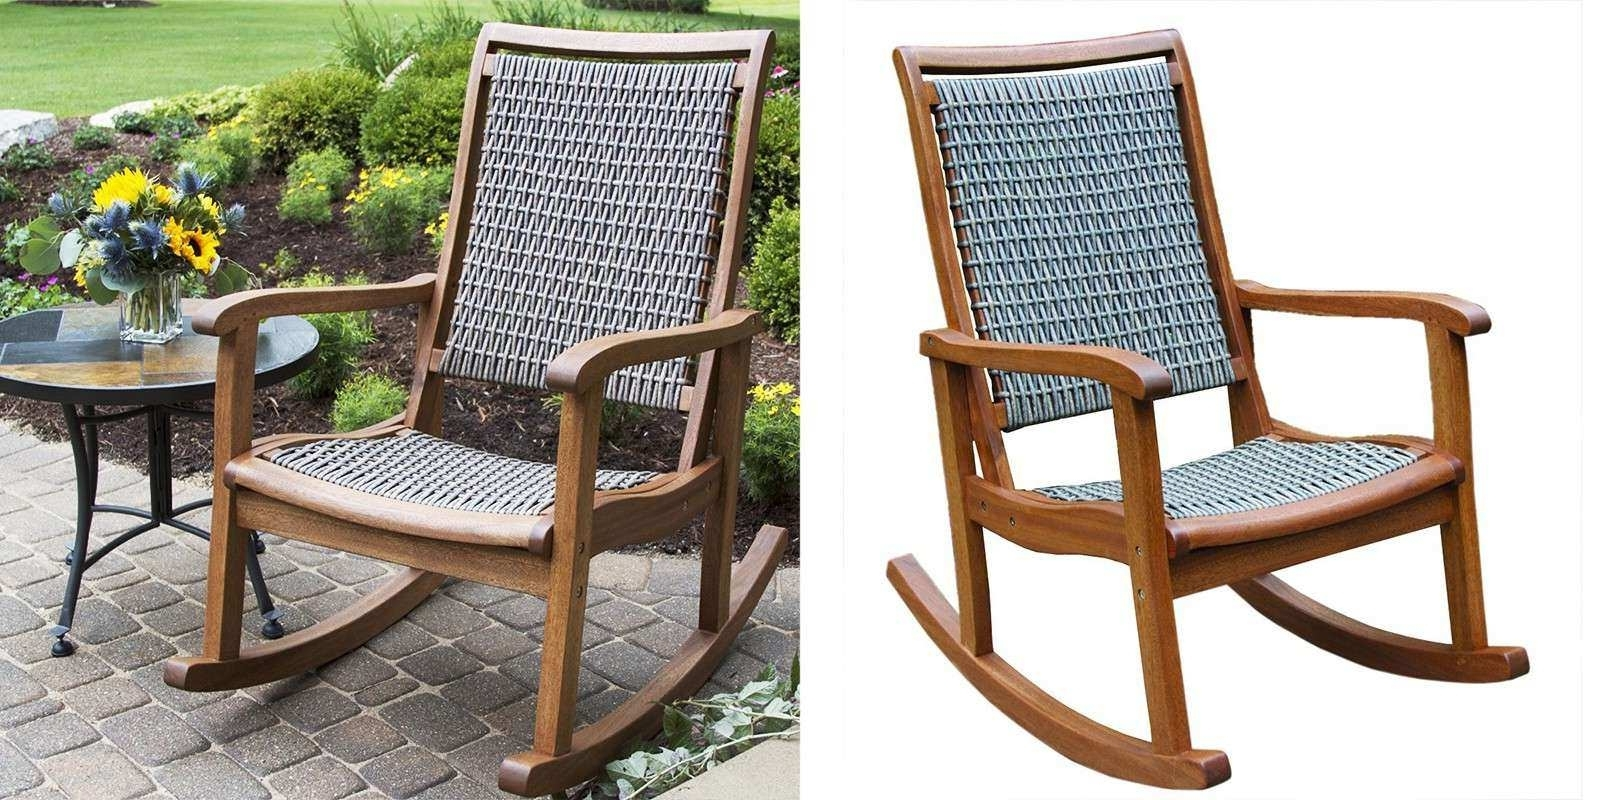 Resin Patio Rocking Chairs For Recent Resin Outdoor Furniture Awesome Resin Patio Rocking Chairs Modern (View 12 of 20)